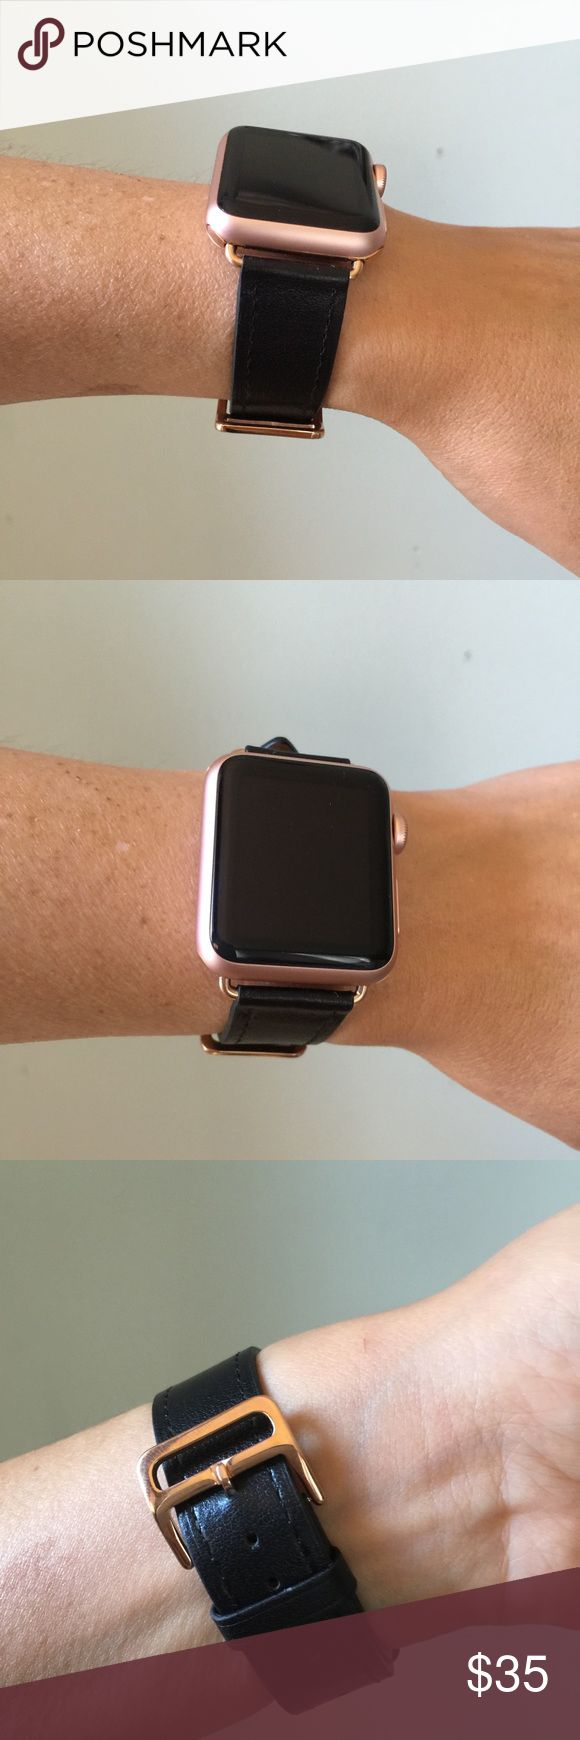 Black Apple Watch band with ROSE GOLD hardware! ⌚️ Black Apple Watch band with rose gold hardware. Single tour band, genuine leather.  It comes in 38mm and 42mm. Please select your size when you purchase. The adapters also fit the Apple Watch Sport. I also have other band colors, hardware colors and styles in my closet. Check them out! I offer 15% off if you buy two or more! only the band is for sale; it does not include the watch. Other